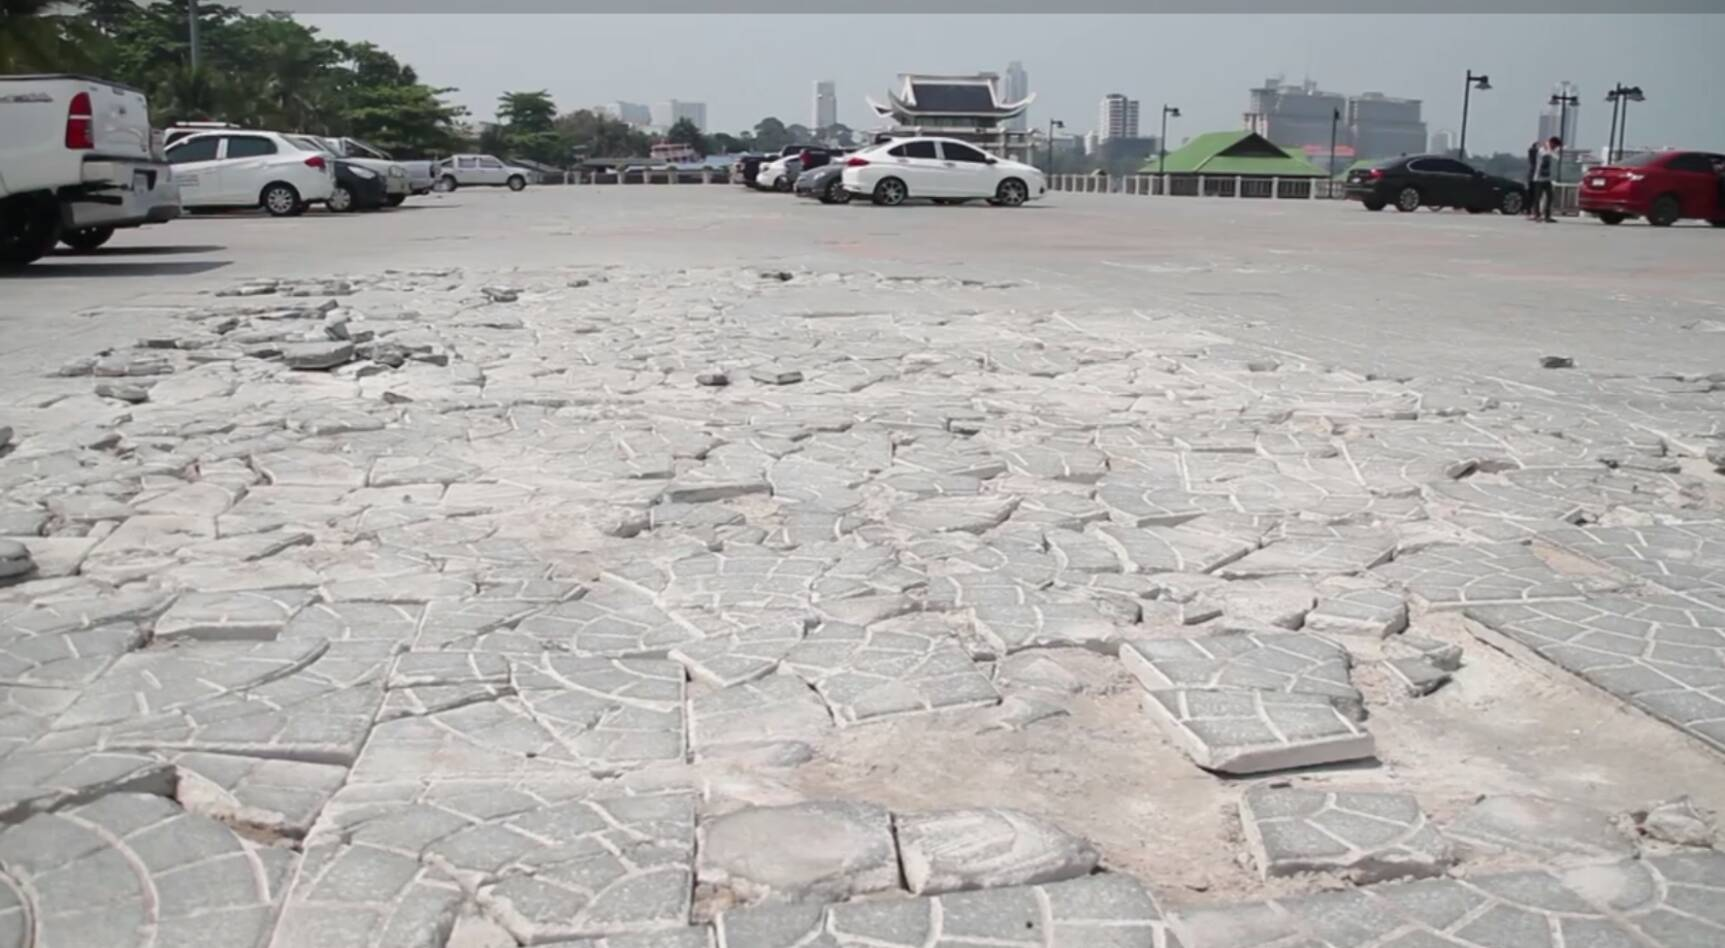 The multipurpose zone of Naklua's Lan Po Public Park was heavily damaged after city hall allowed cars to park on the unreinforced pavement.